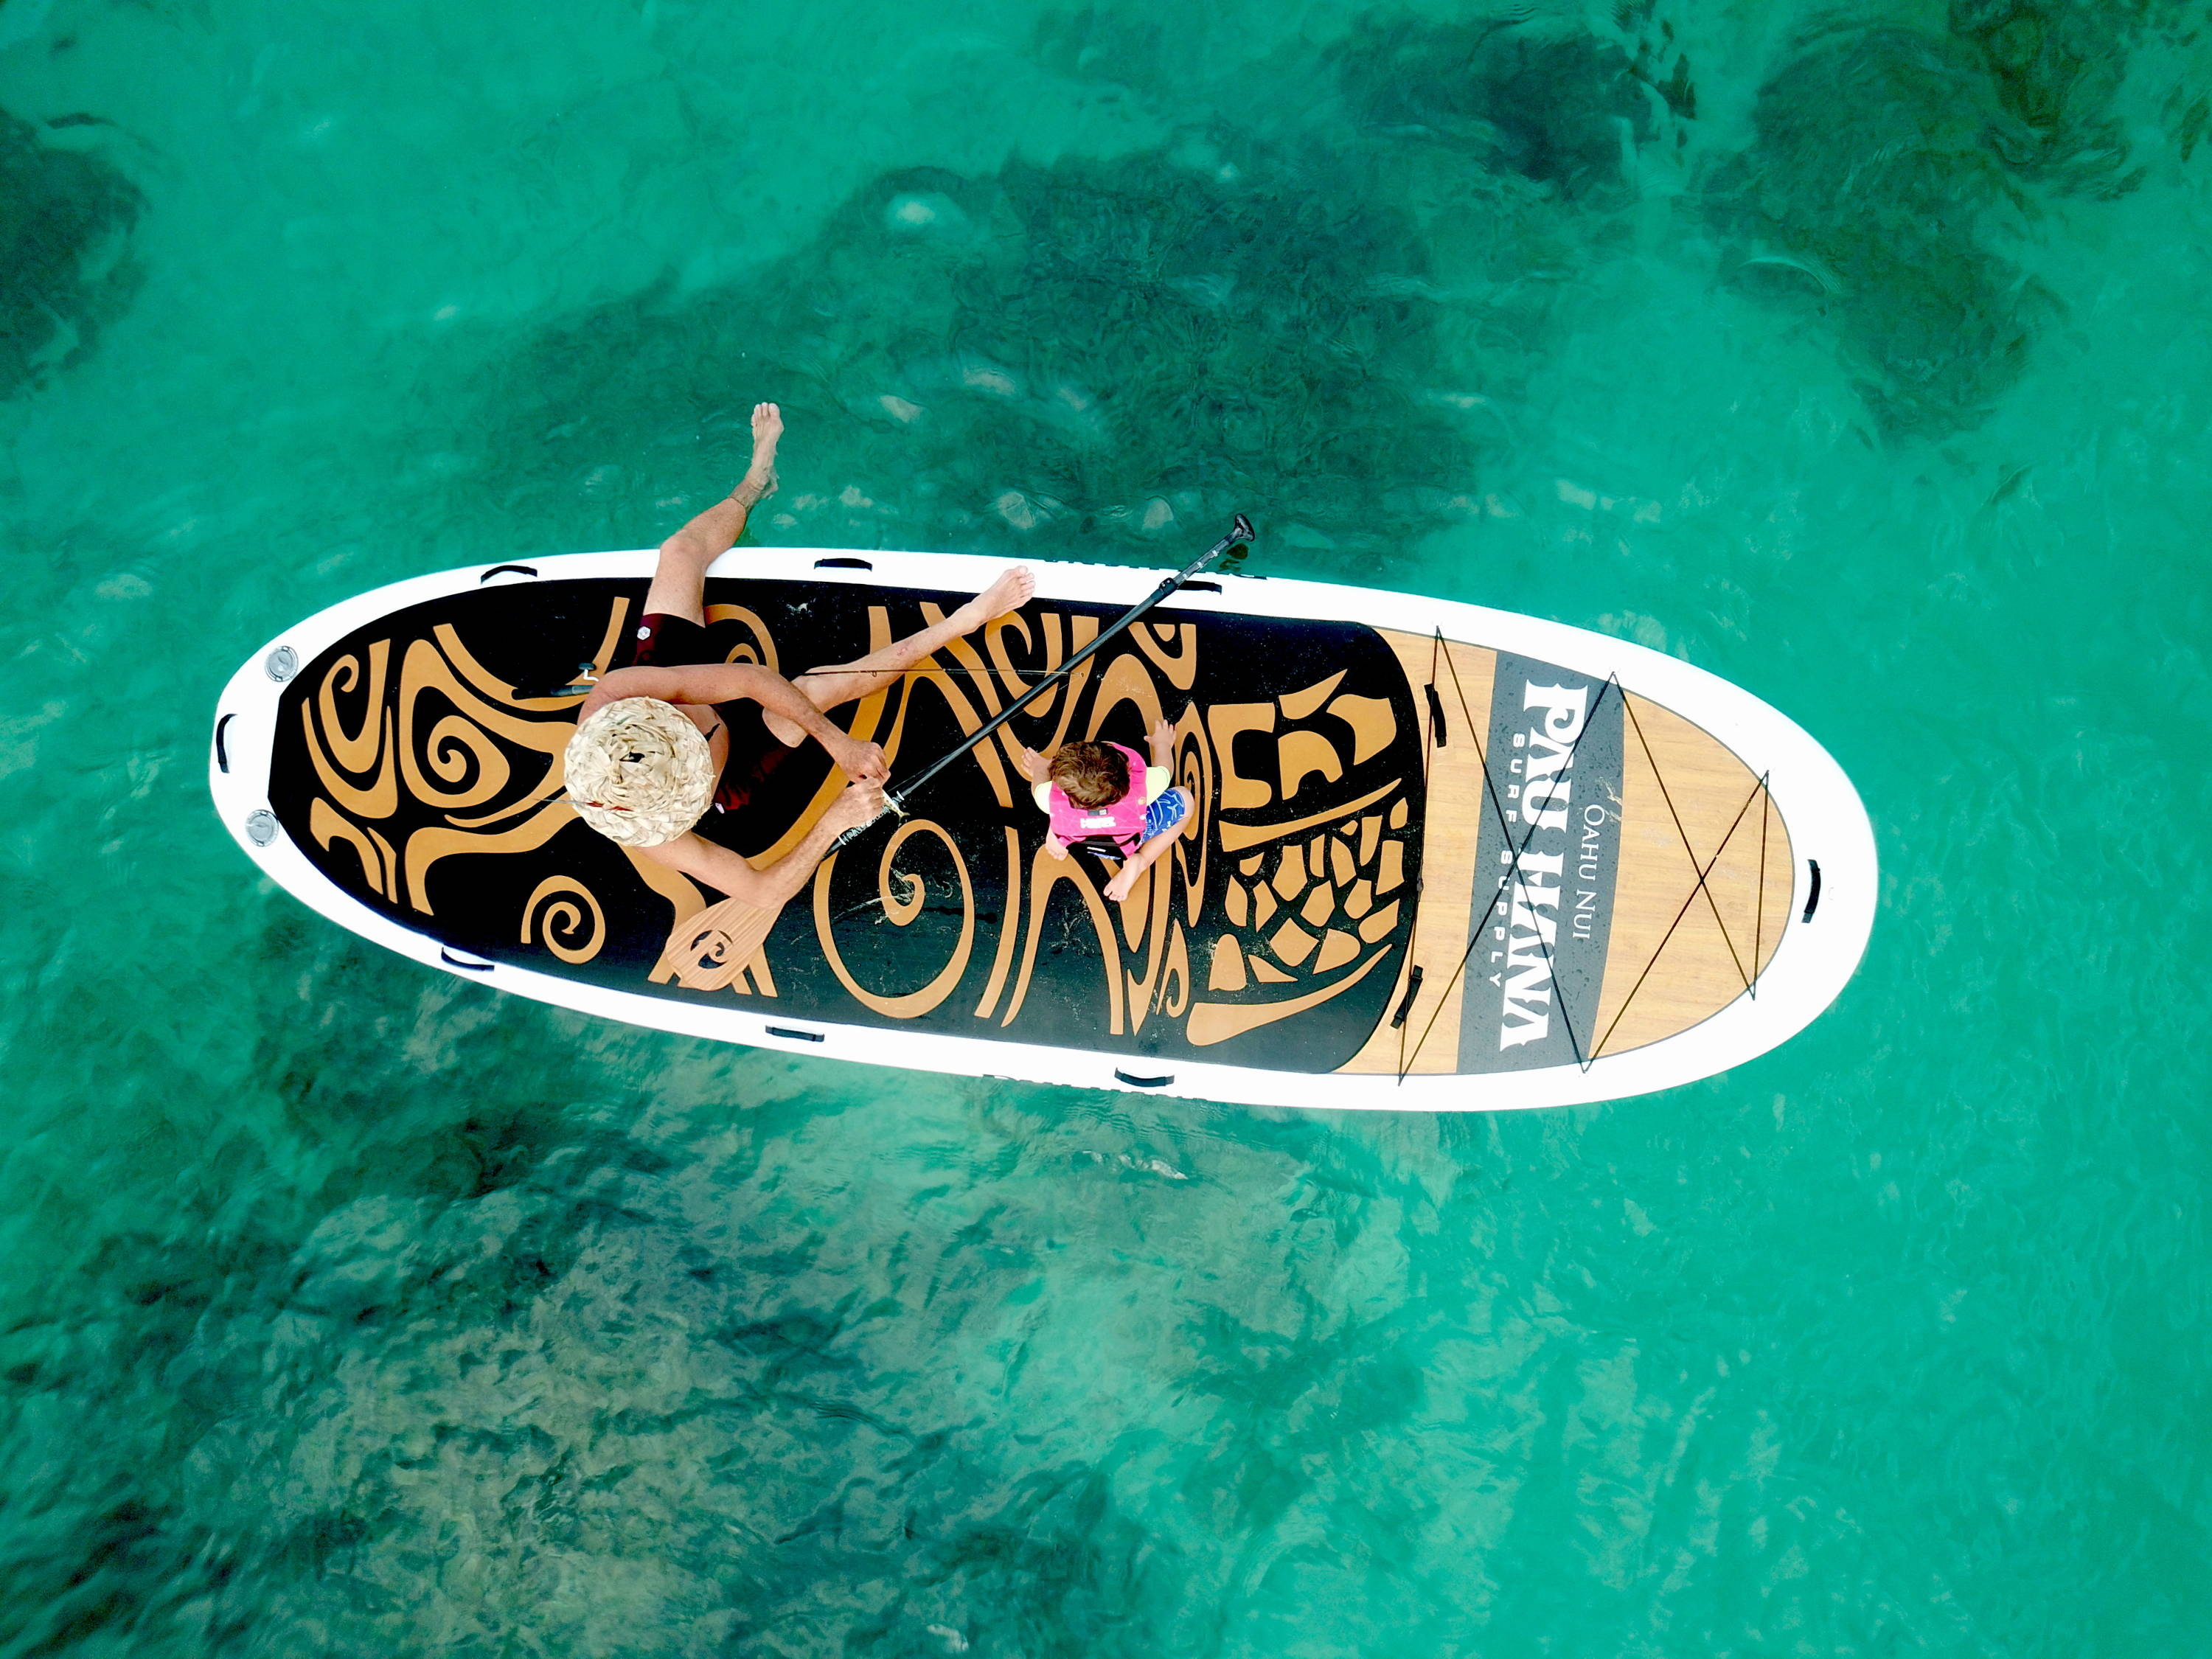 The best giant paddle board out there. Oahu nui giant stand up paddle board inflatable